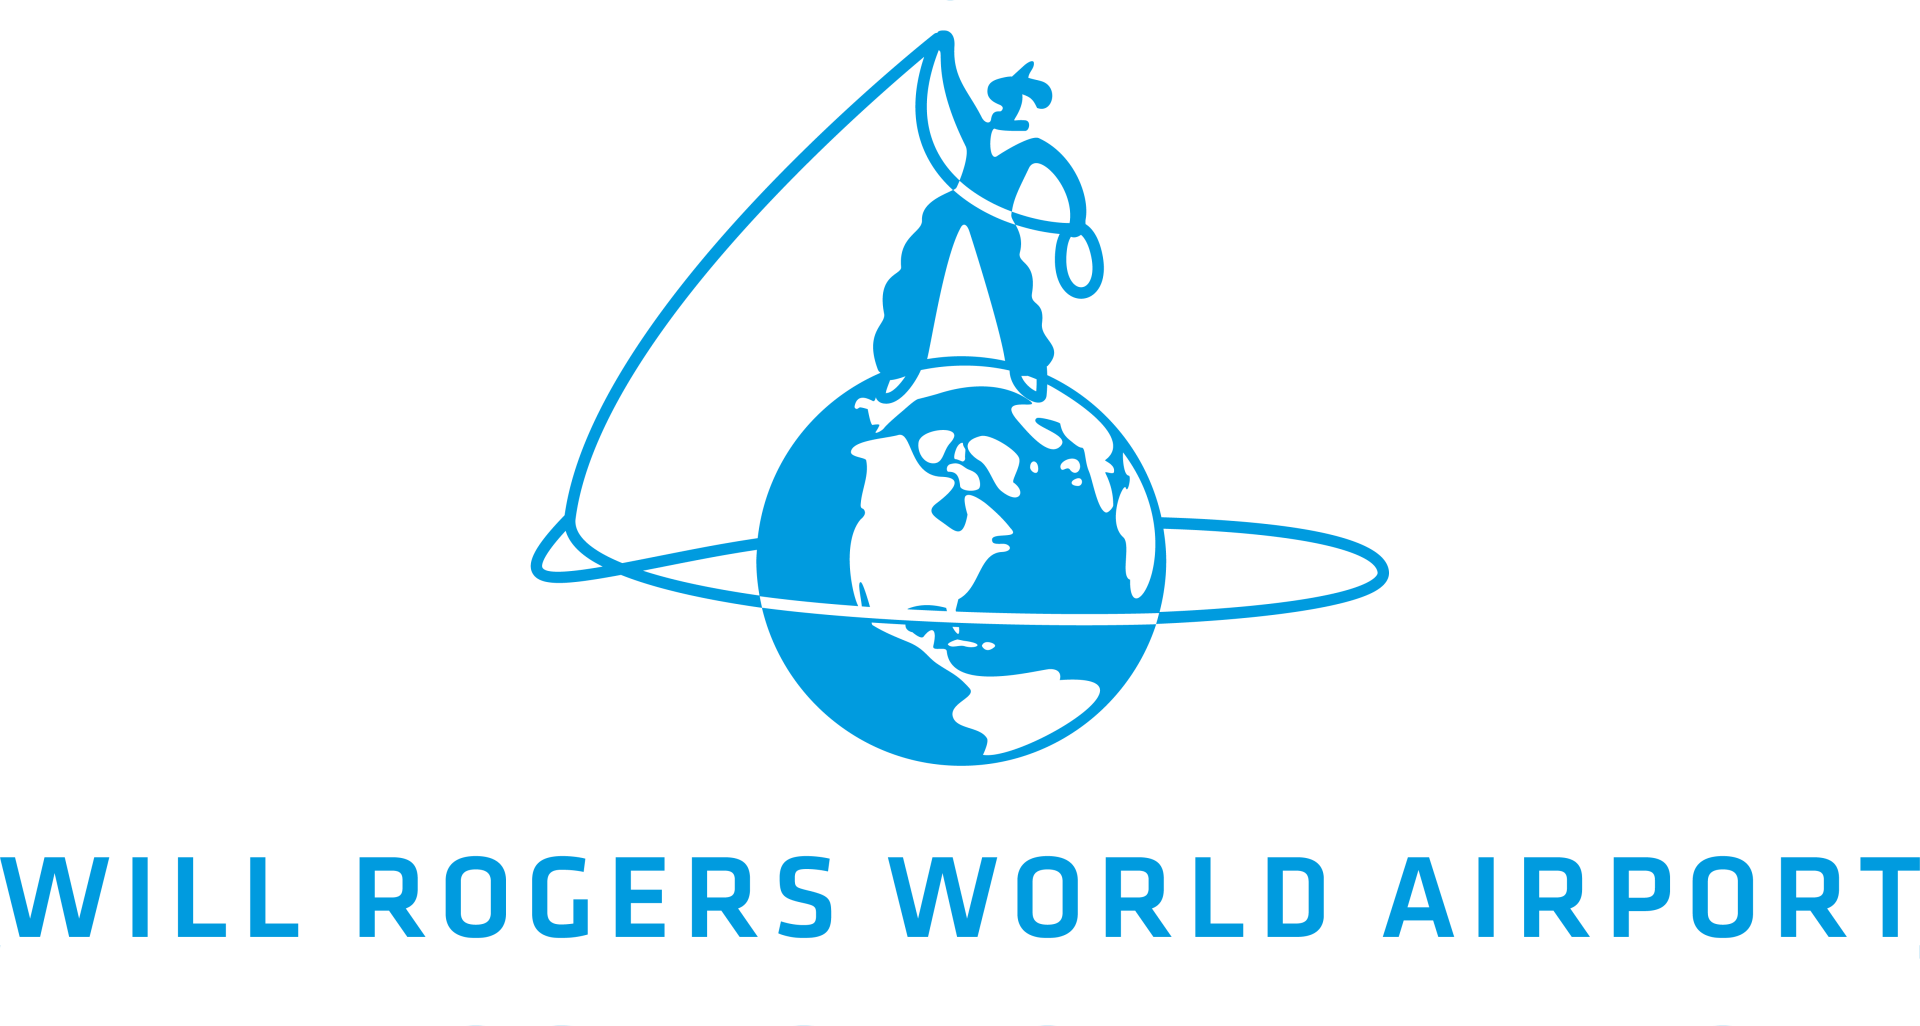 Will Rogers World Airport logo